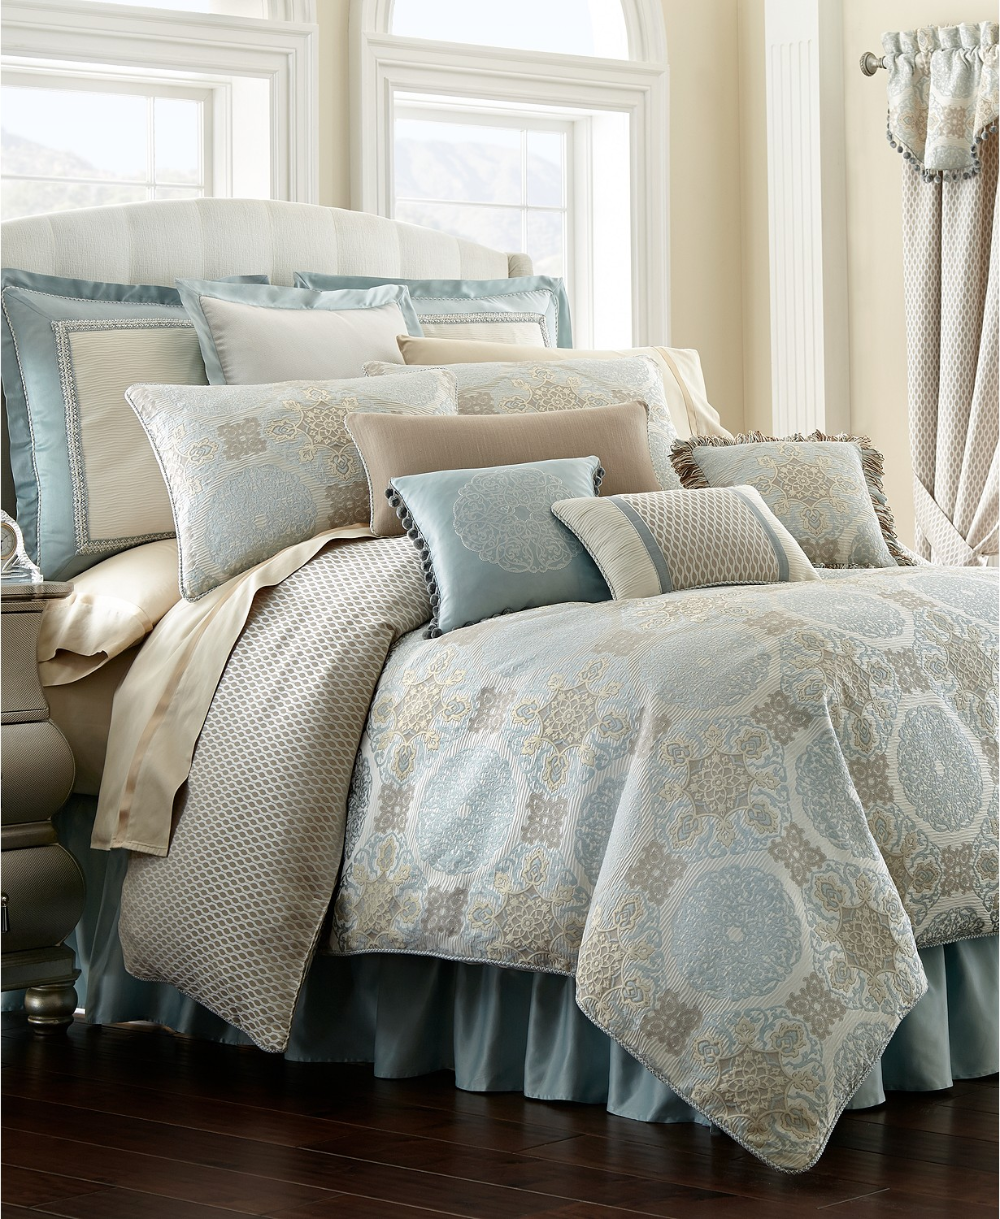 Waterford Reversible Jonet Bedding Collection Reviews Bedding